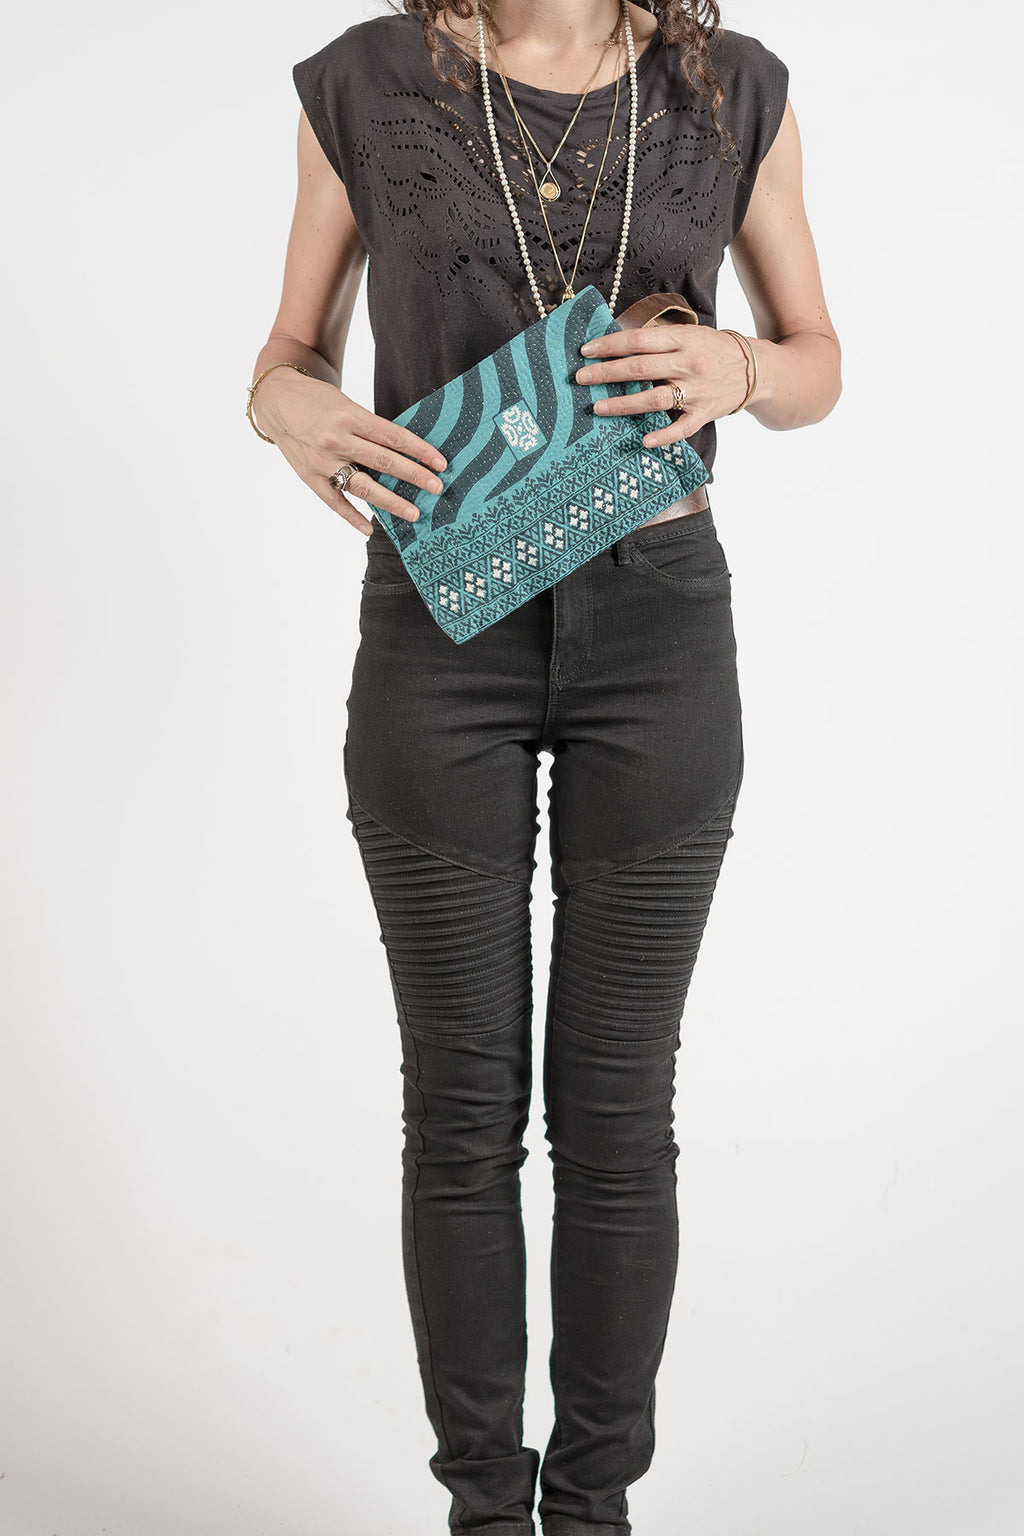 Turquoise Block Print Fabric Clutch Bag